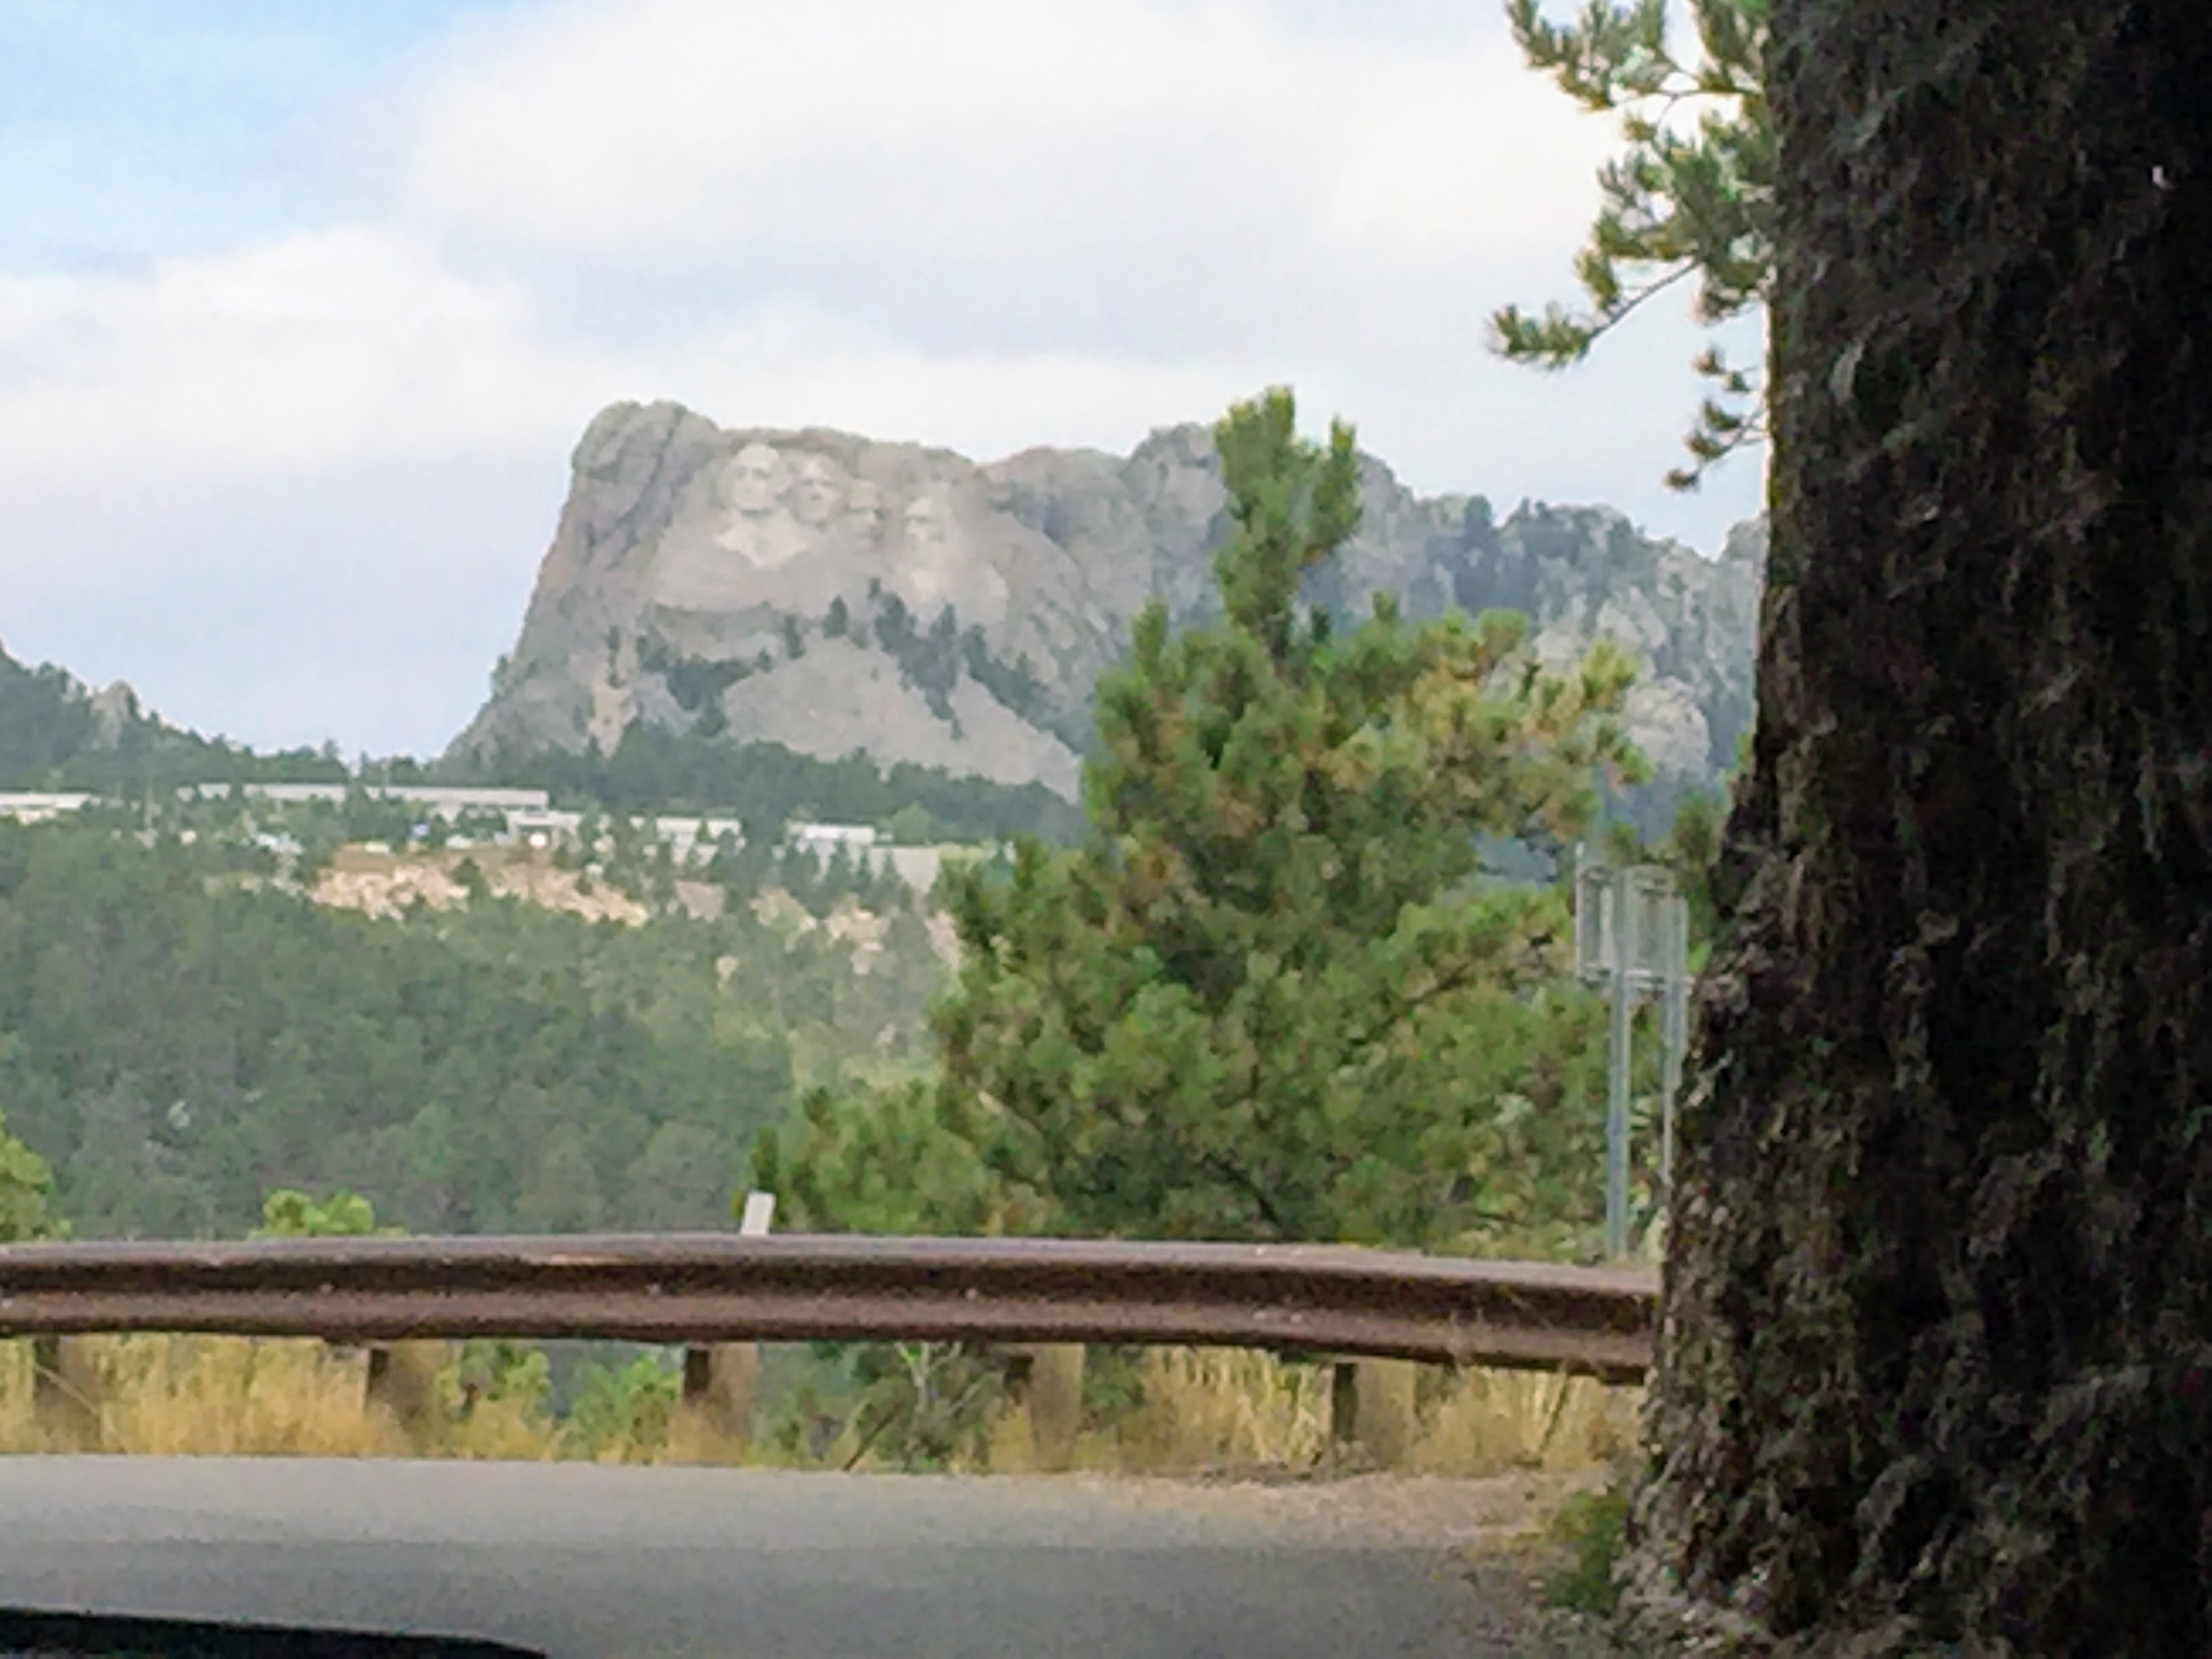 2017-09-17 Black Hills 11 Pigtail Tunnel 07